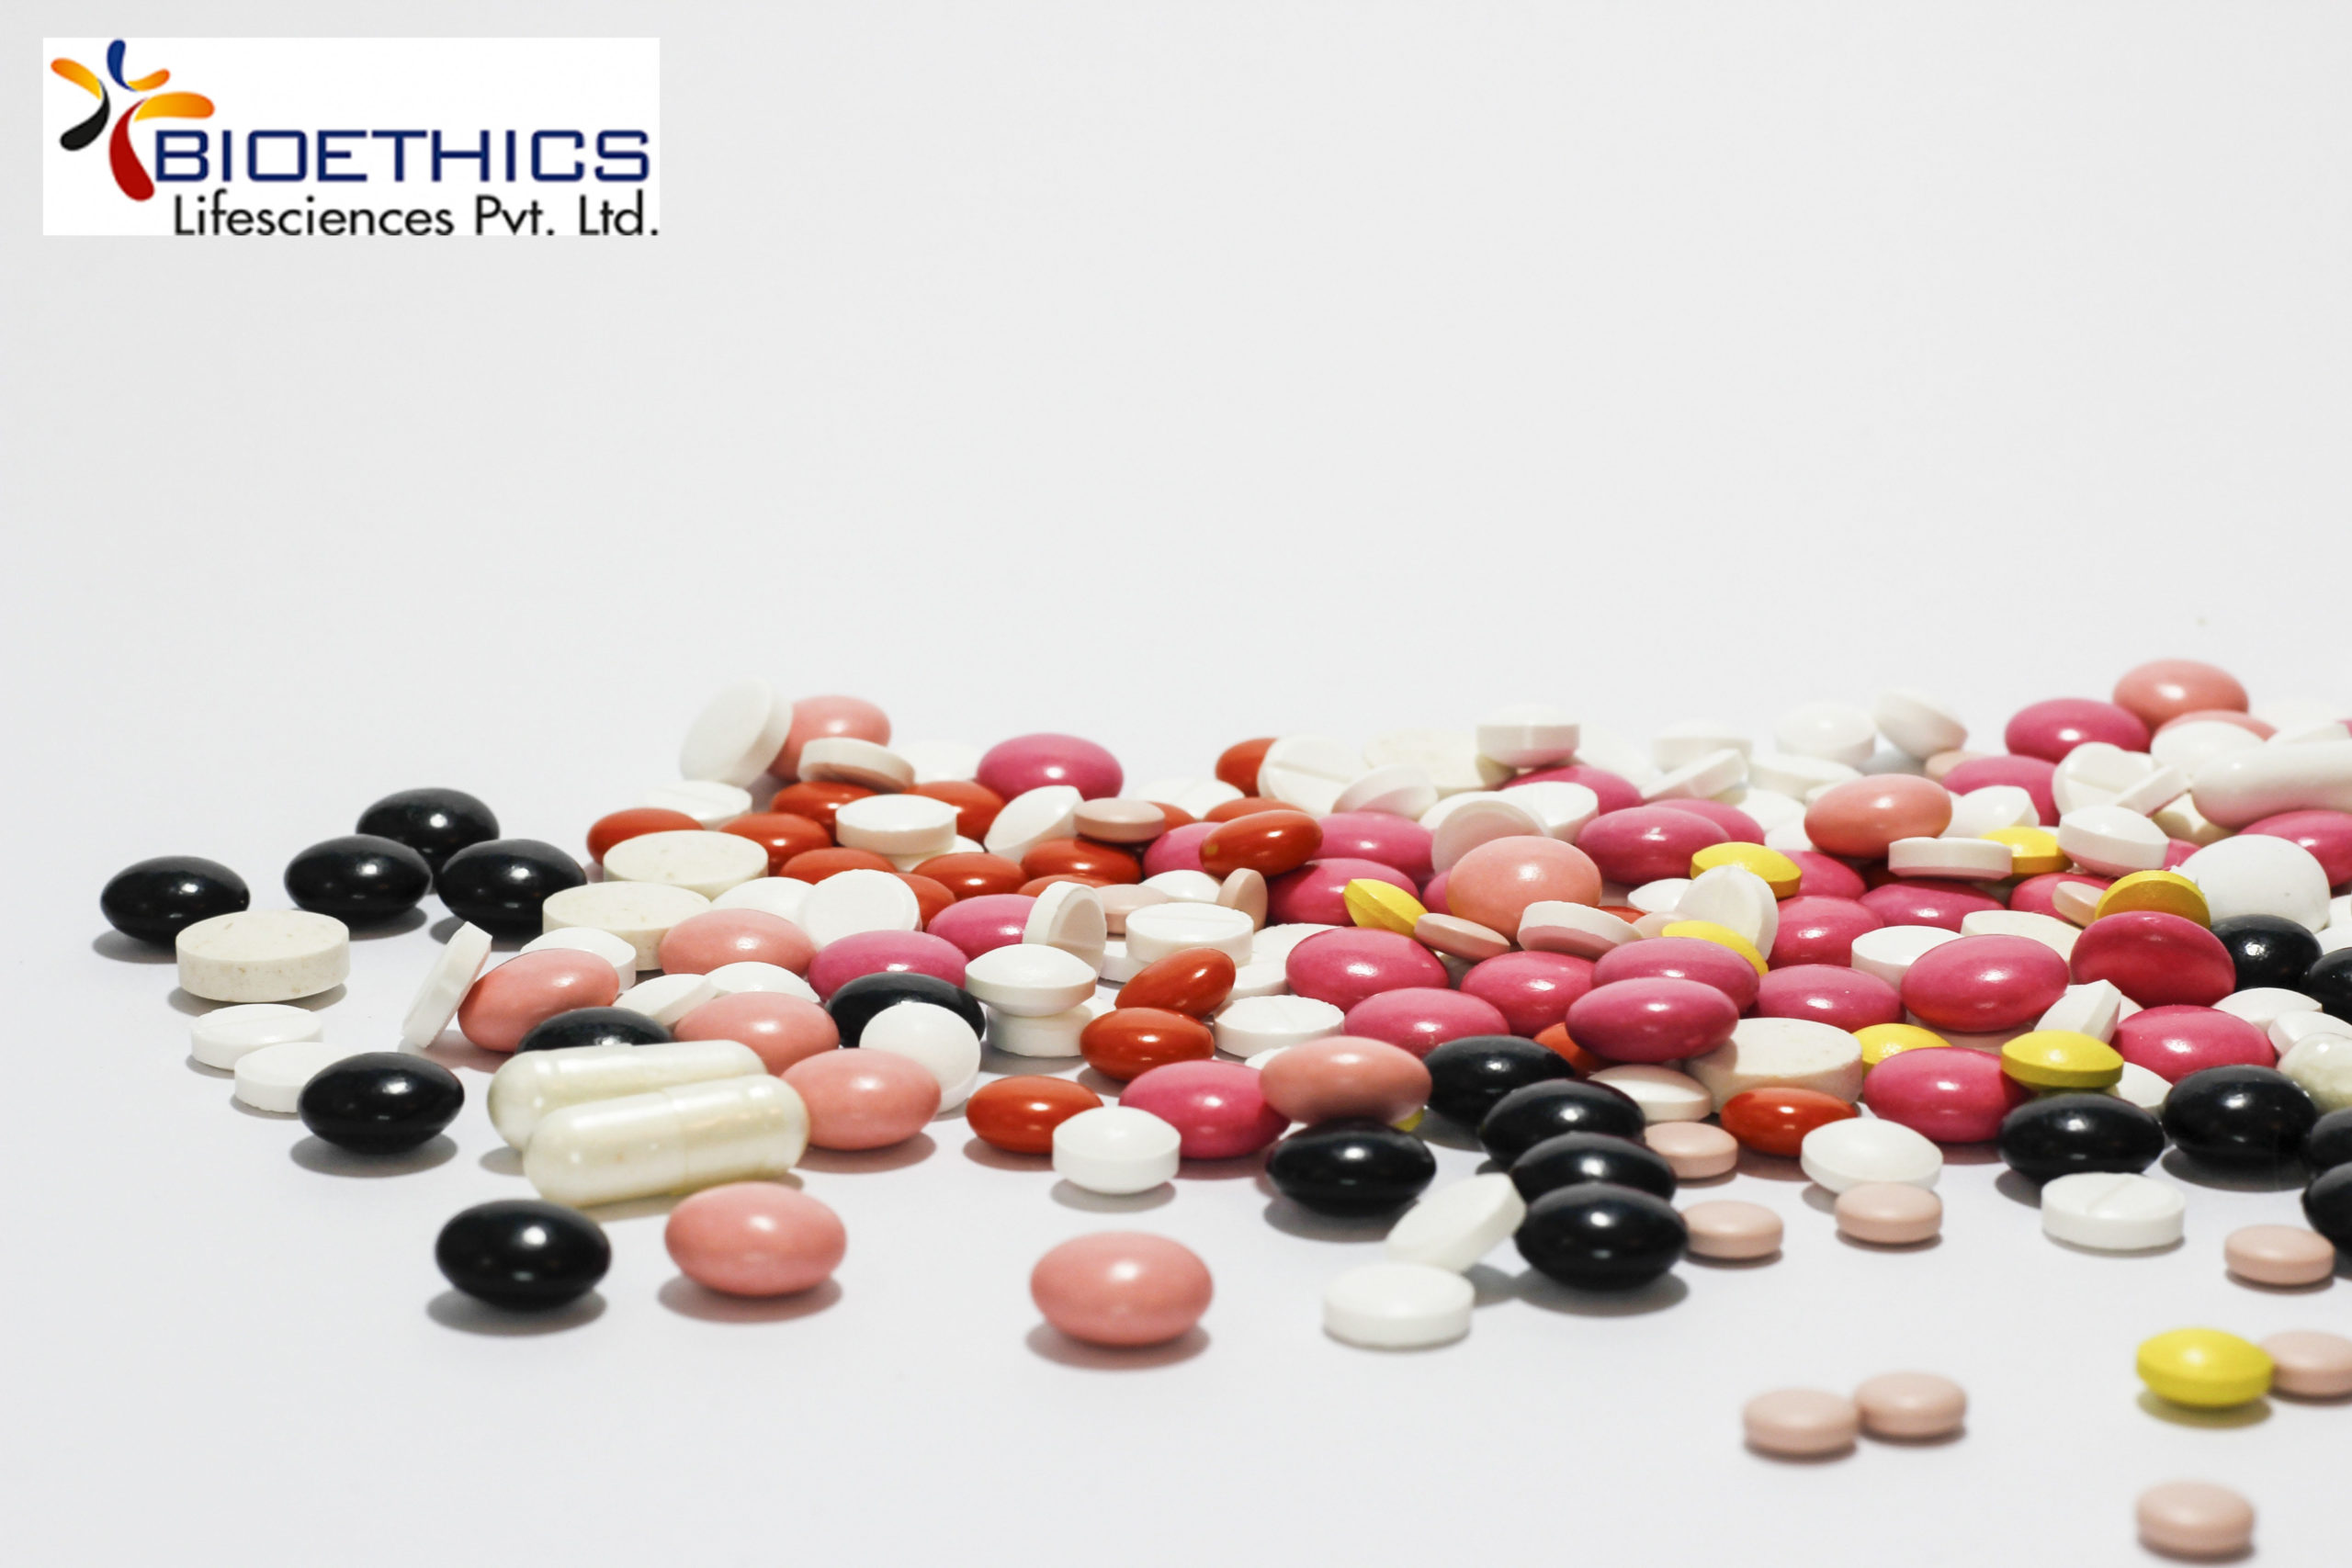 Top 10 PDC Pharma Franchise Companies in Rajasthan